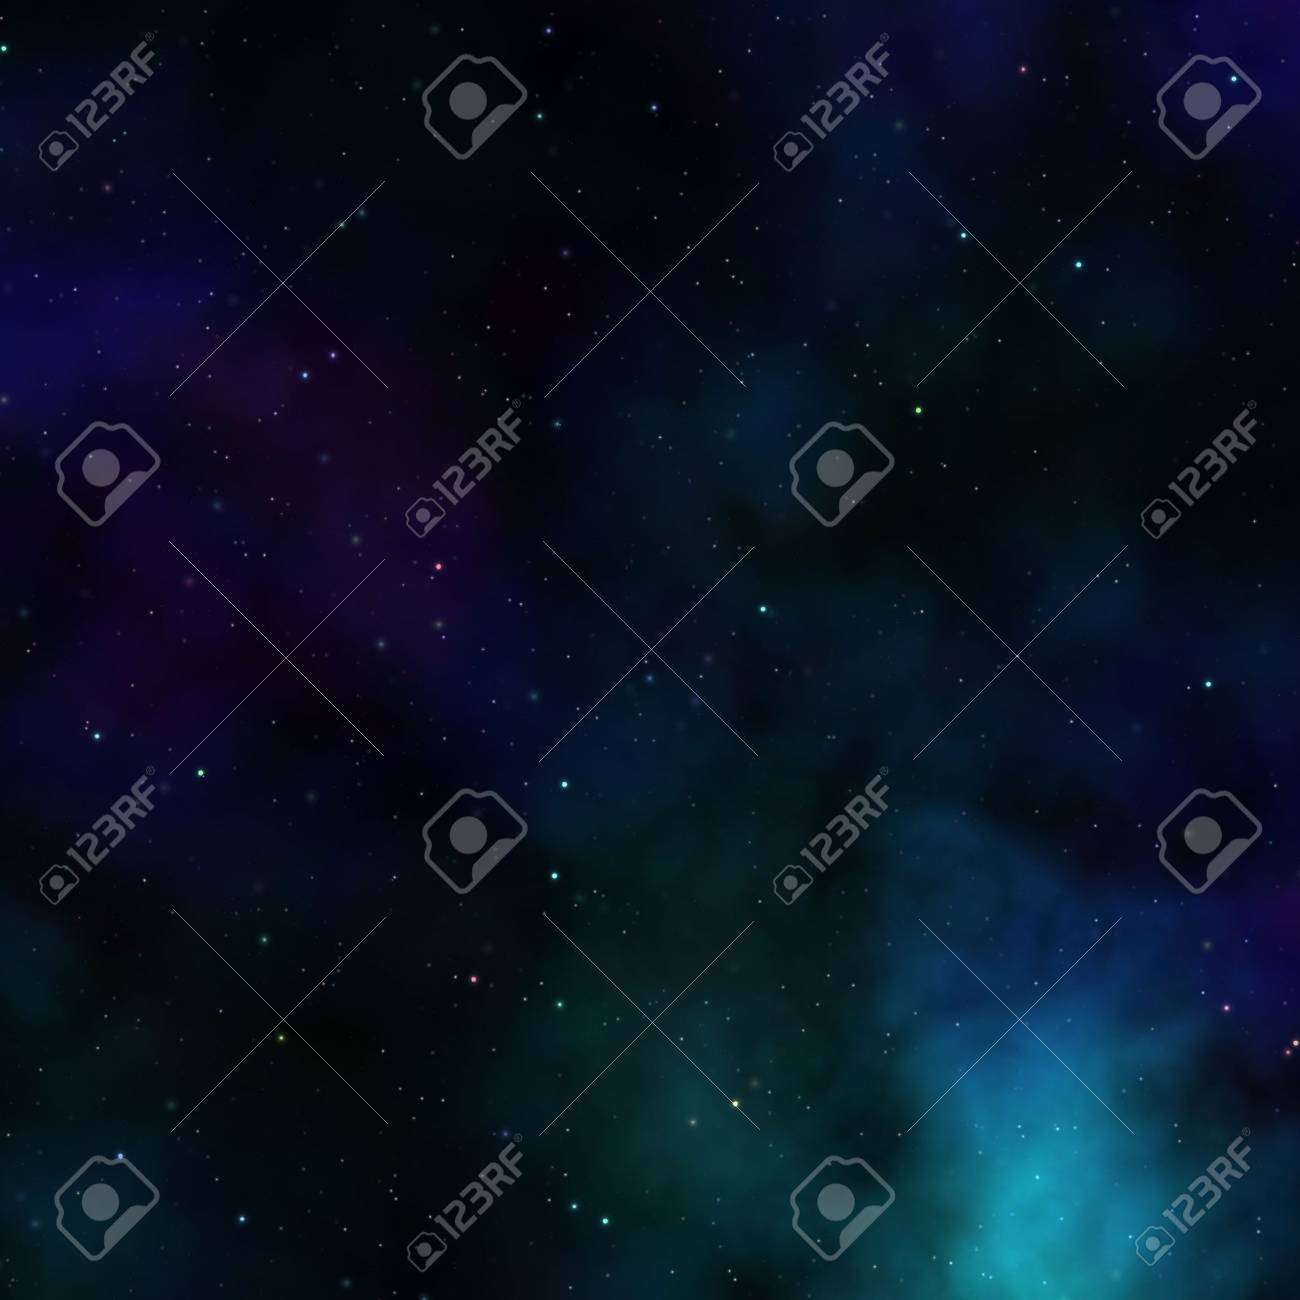 Space nebula starfield abstract illustration of outerspace starry sky Stock Illustration - 3313003